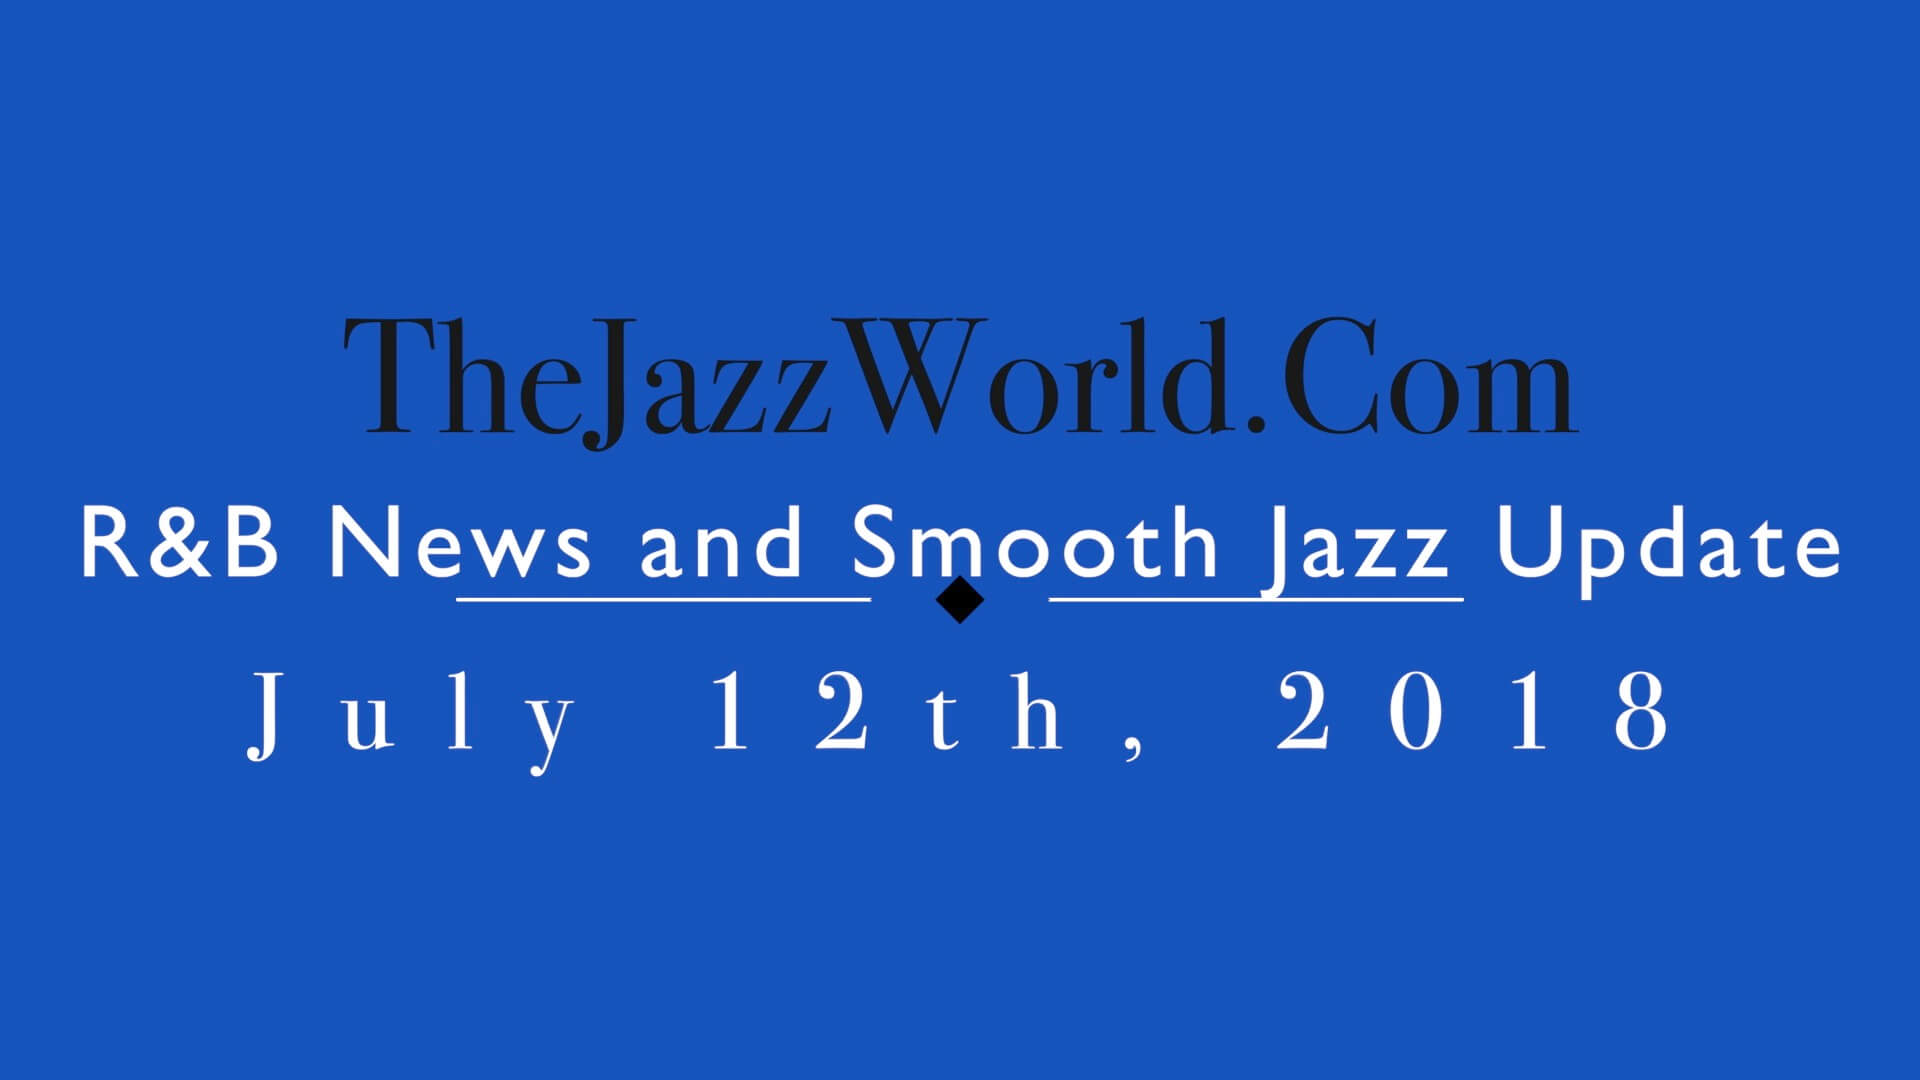 Latest R&B News and Smooth Jazz Update July 12th